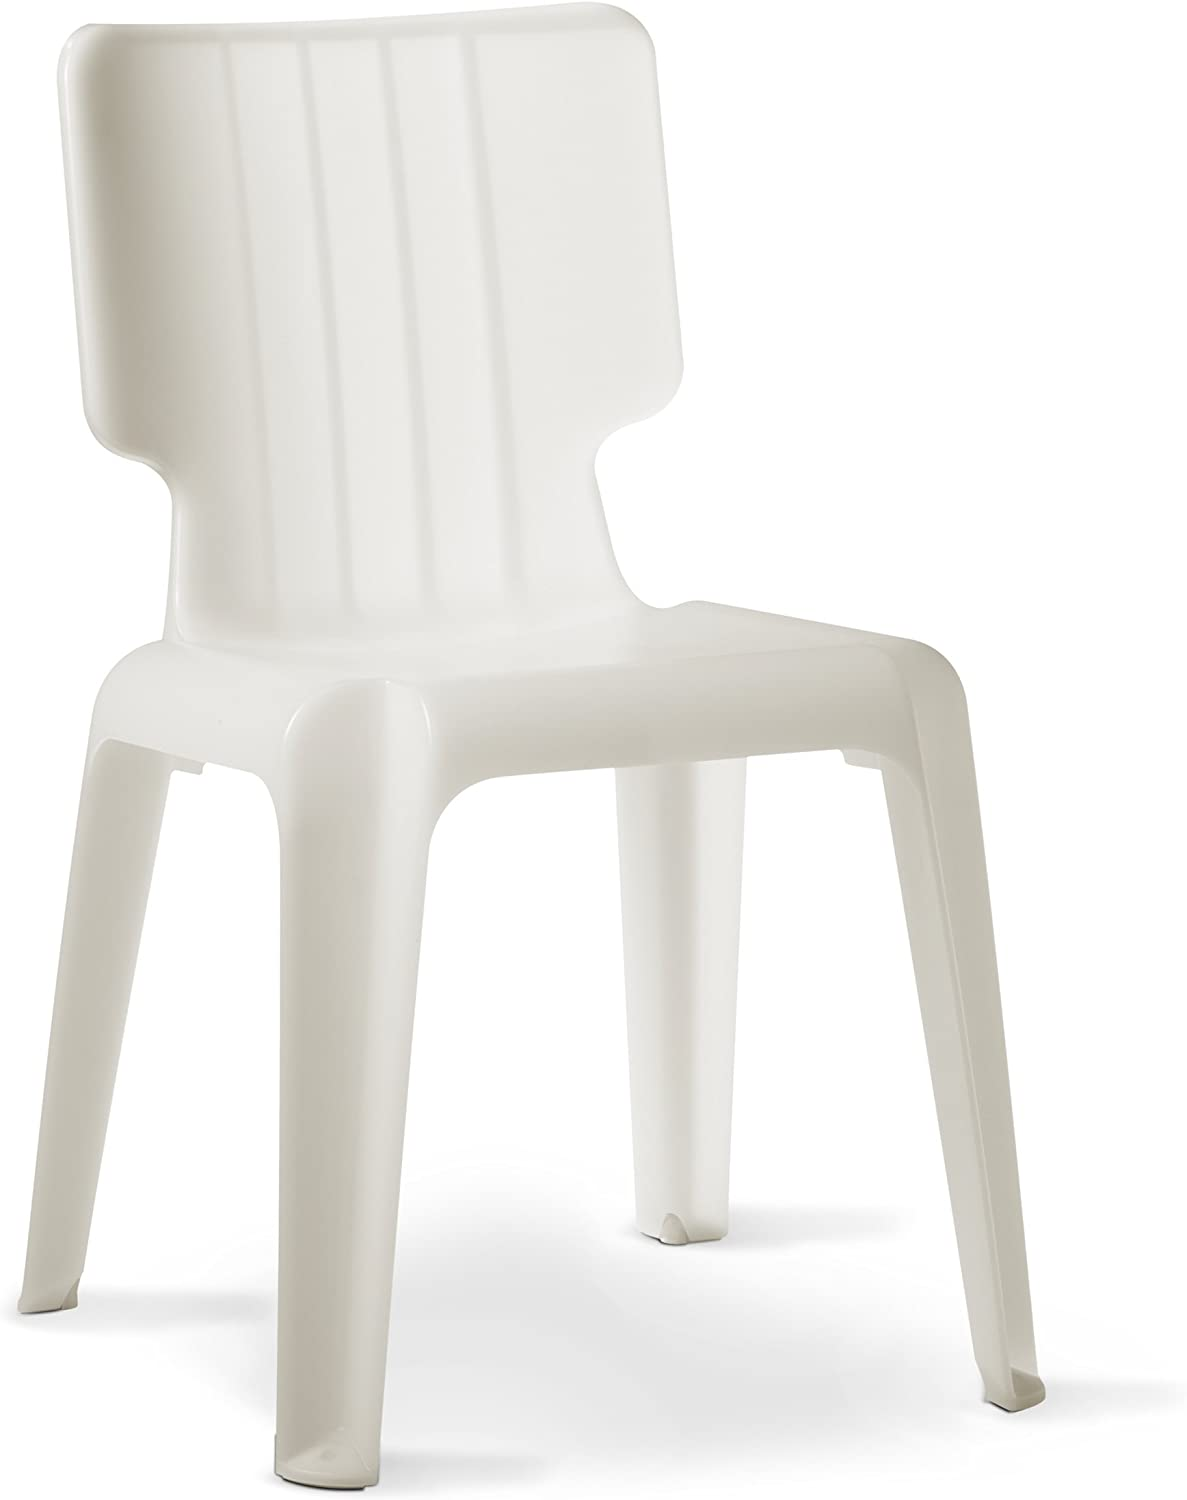 Authentics Wait Plastic Chair, Stackable Chair, White, Plastic, 1085028